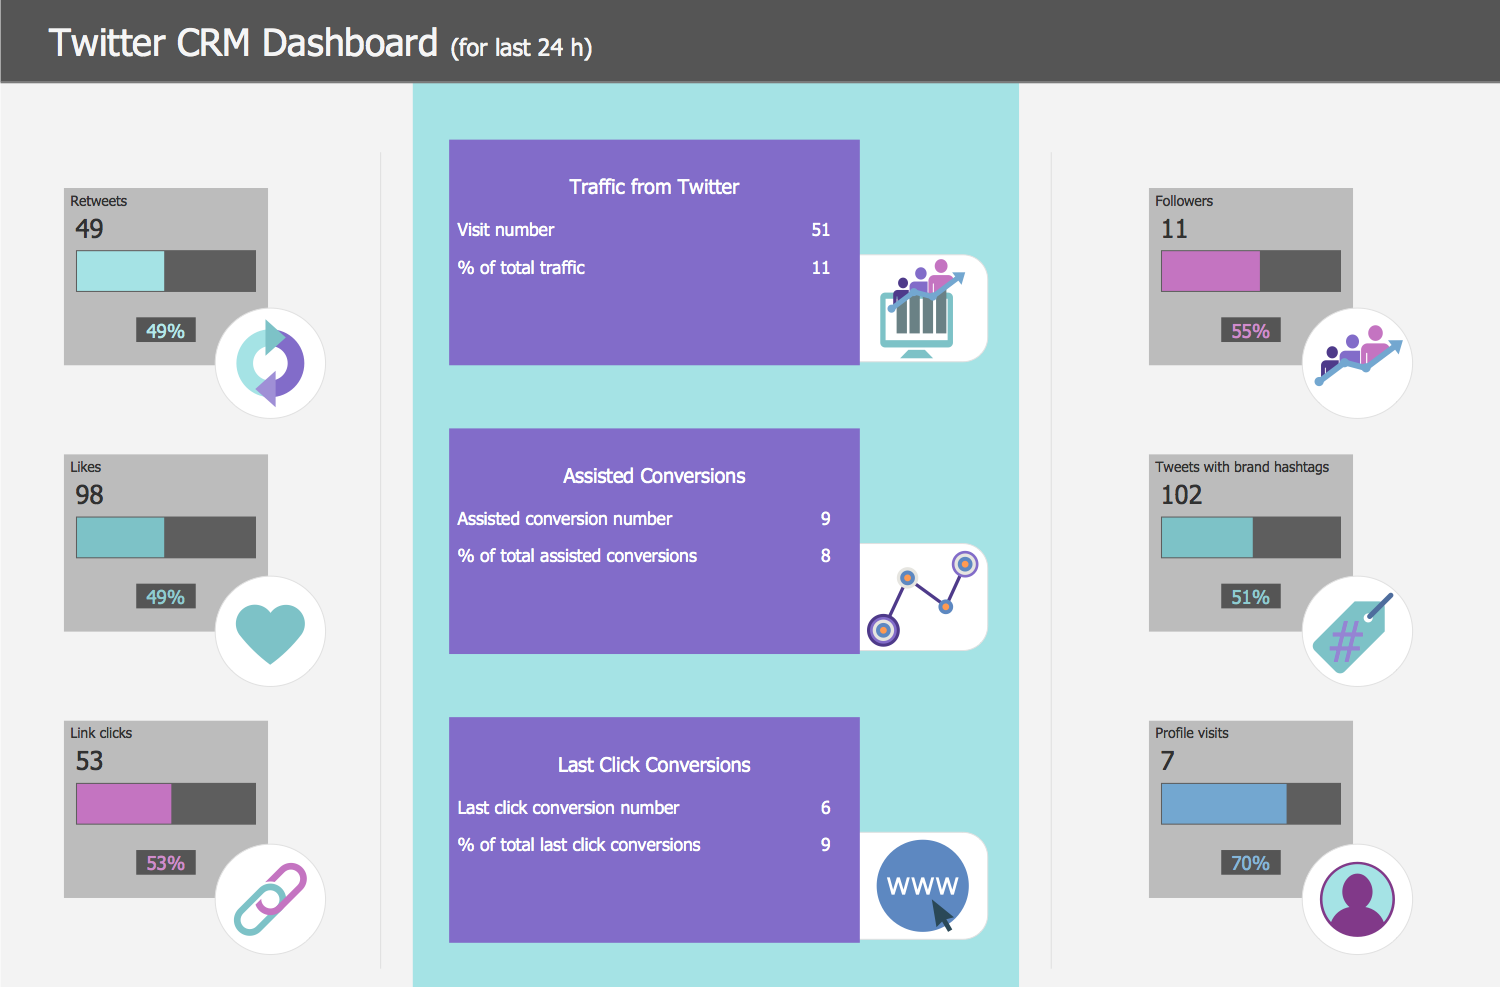 Twitter CRM Dashboard